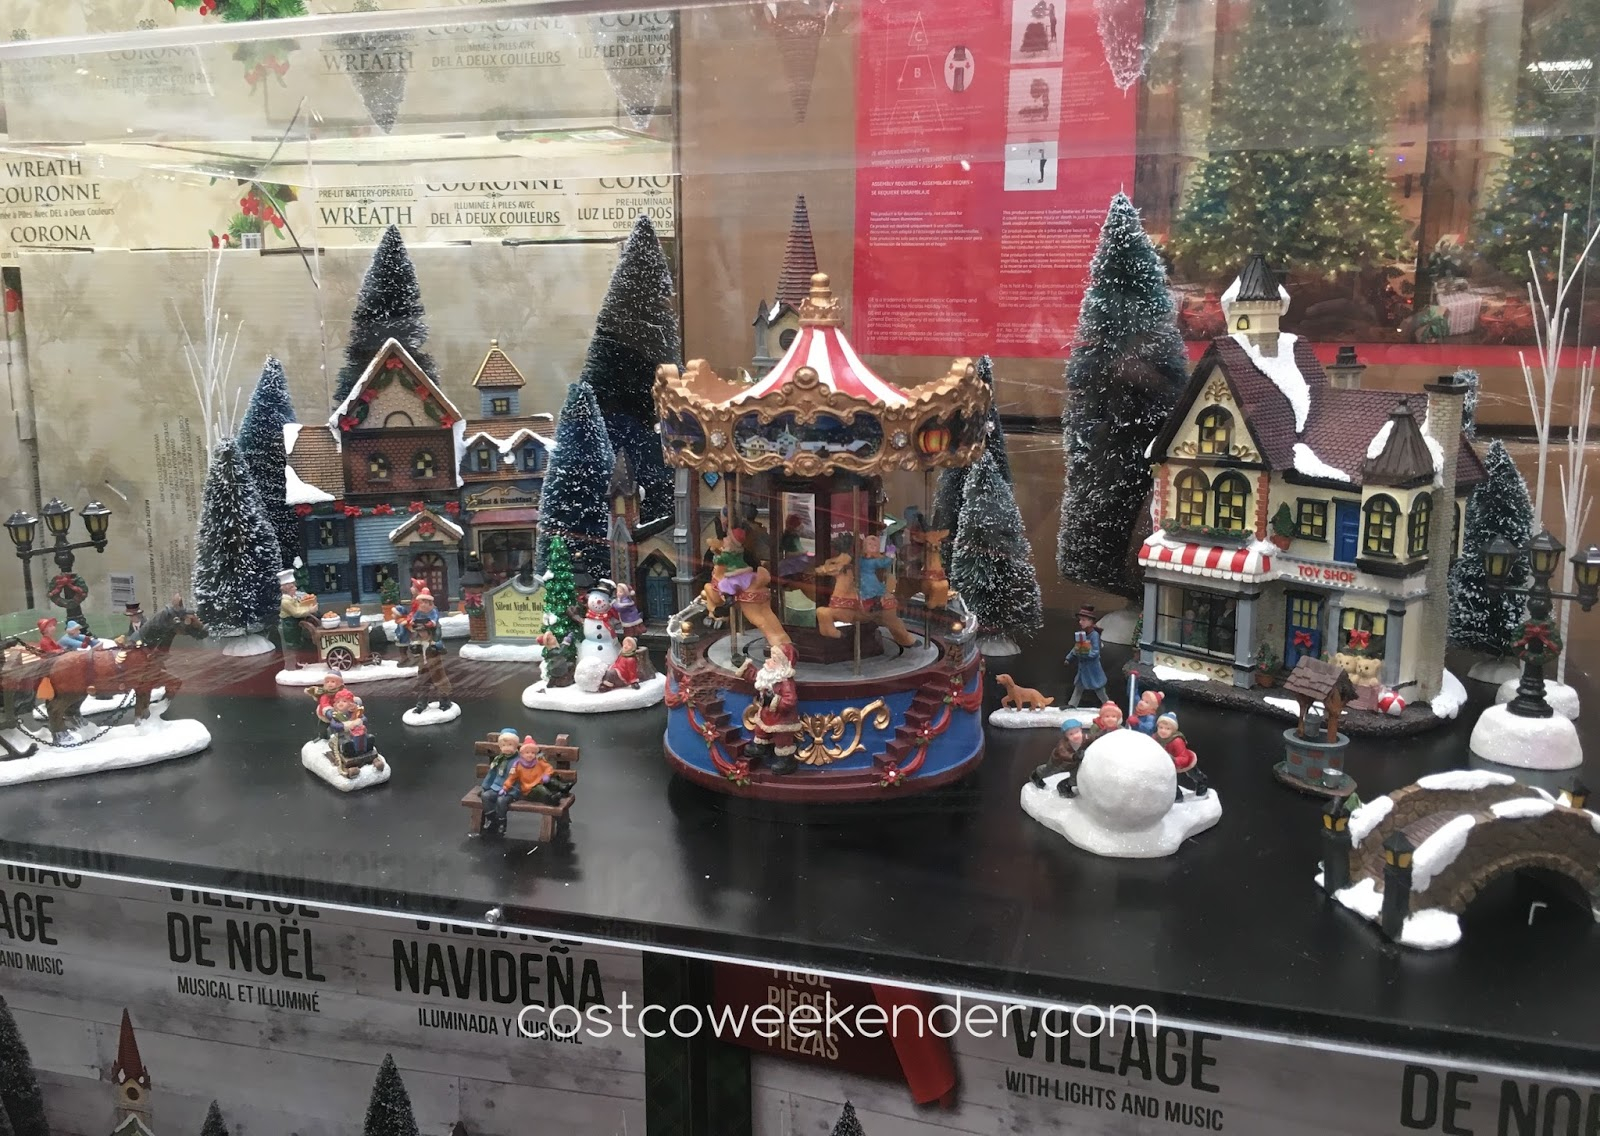 Costco 998983 - Christmas Village with Lights and Music - great for the holidays